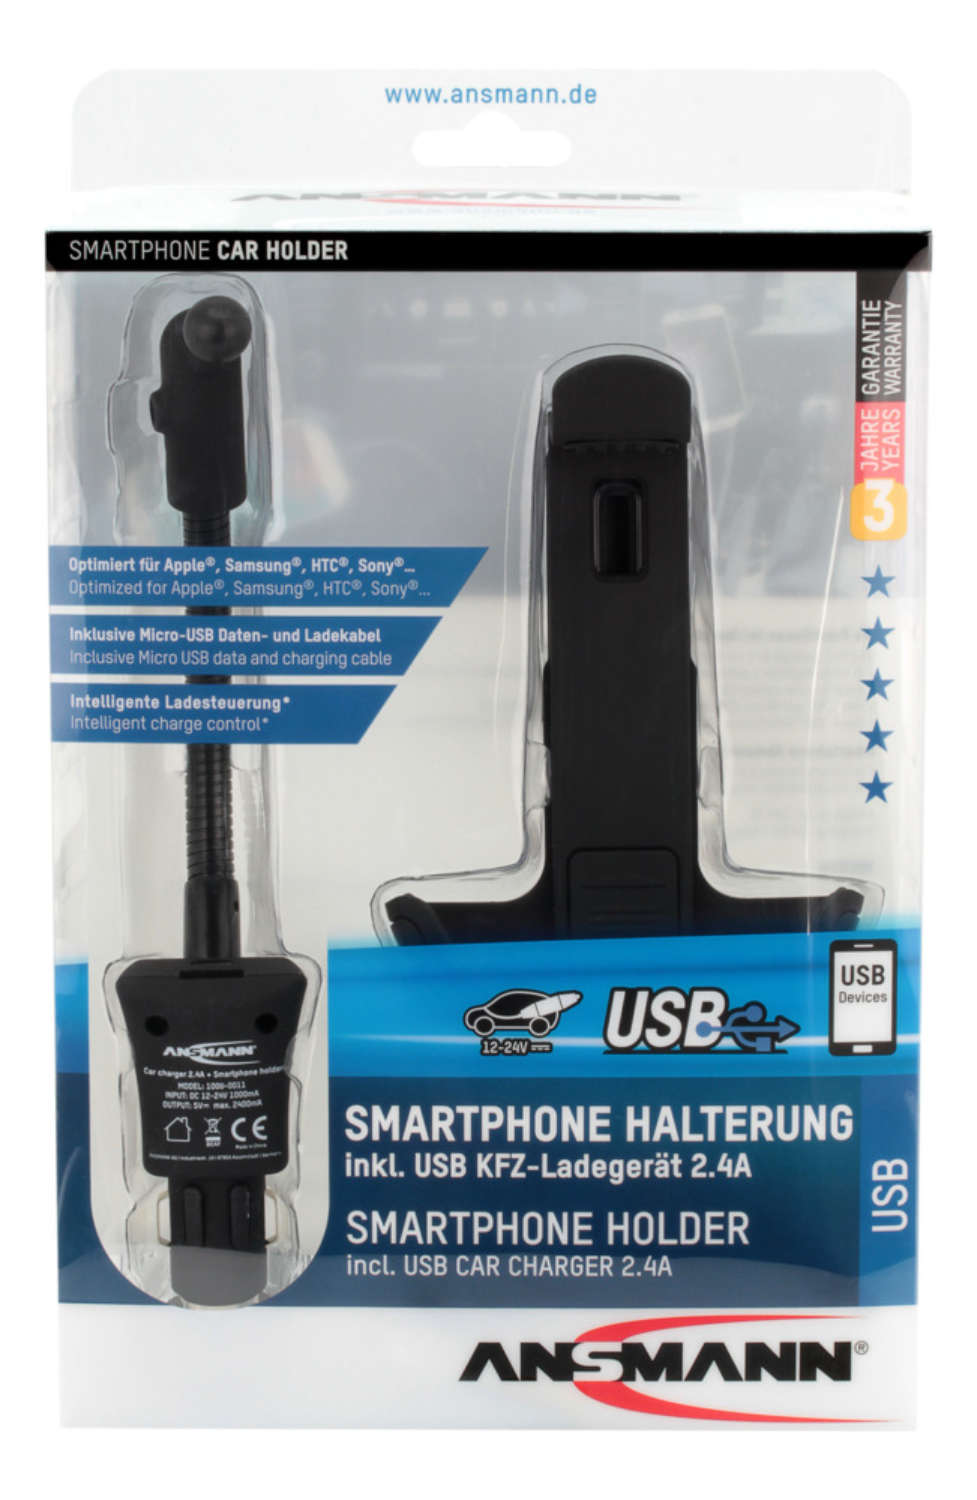 USB in-car 2.4A charger with smartphone holder